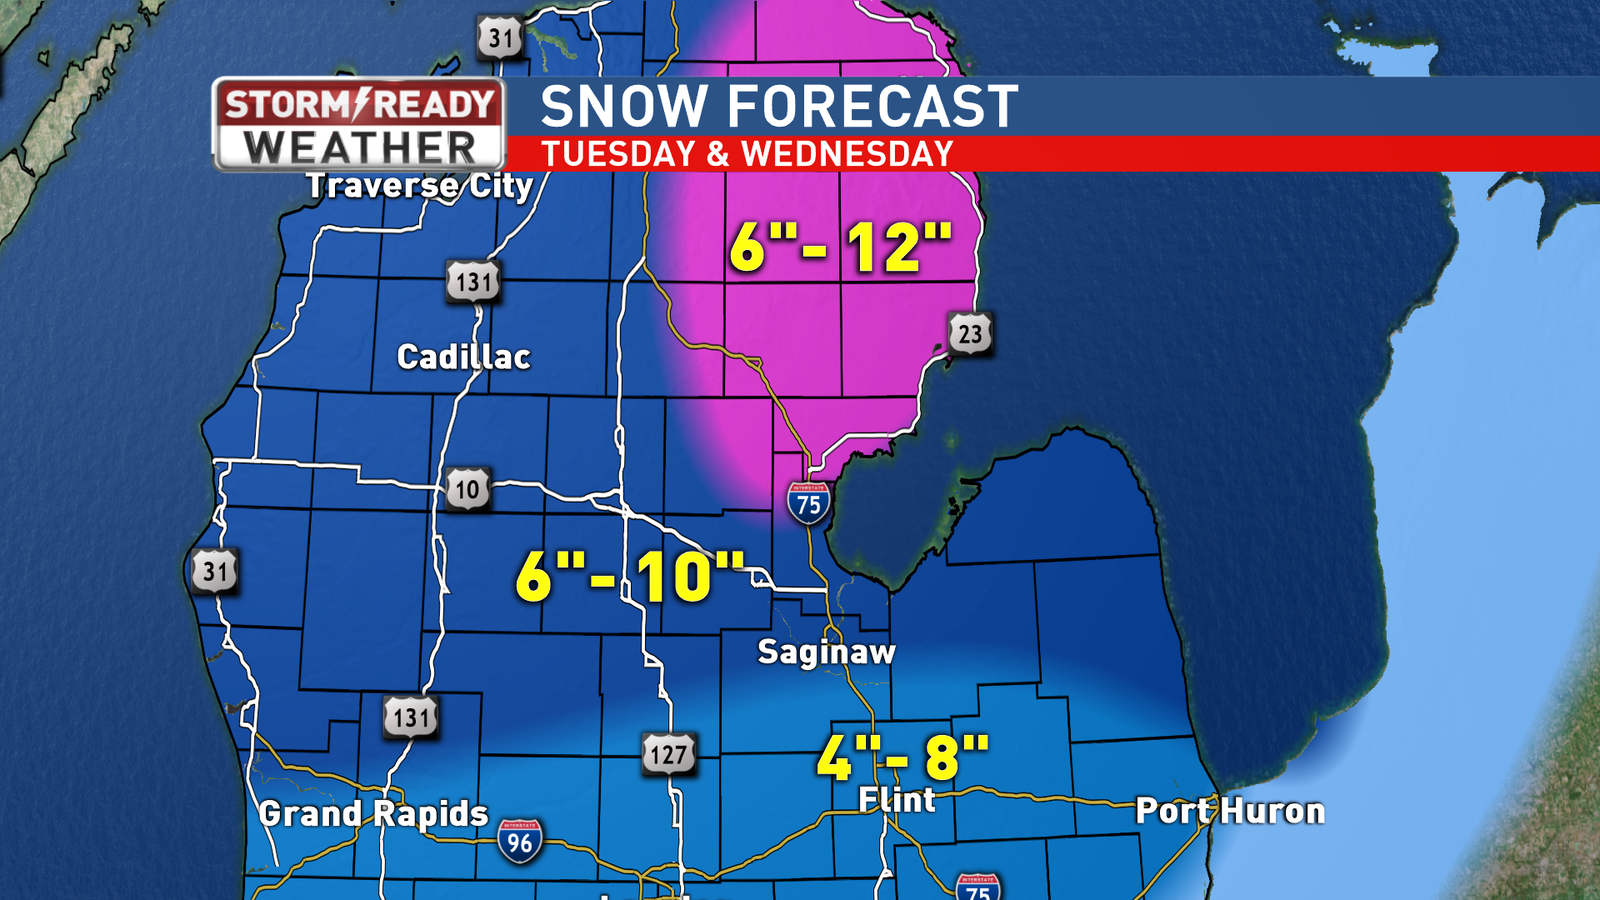 Snowfall Totals Forecast